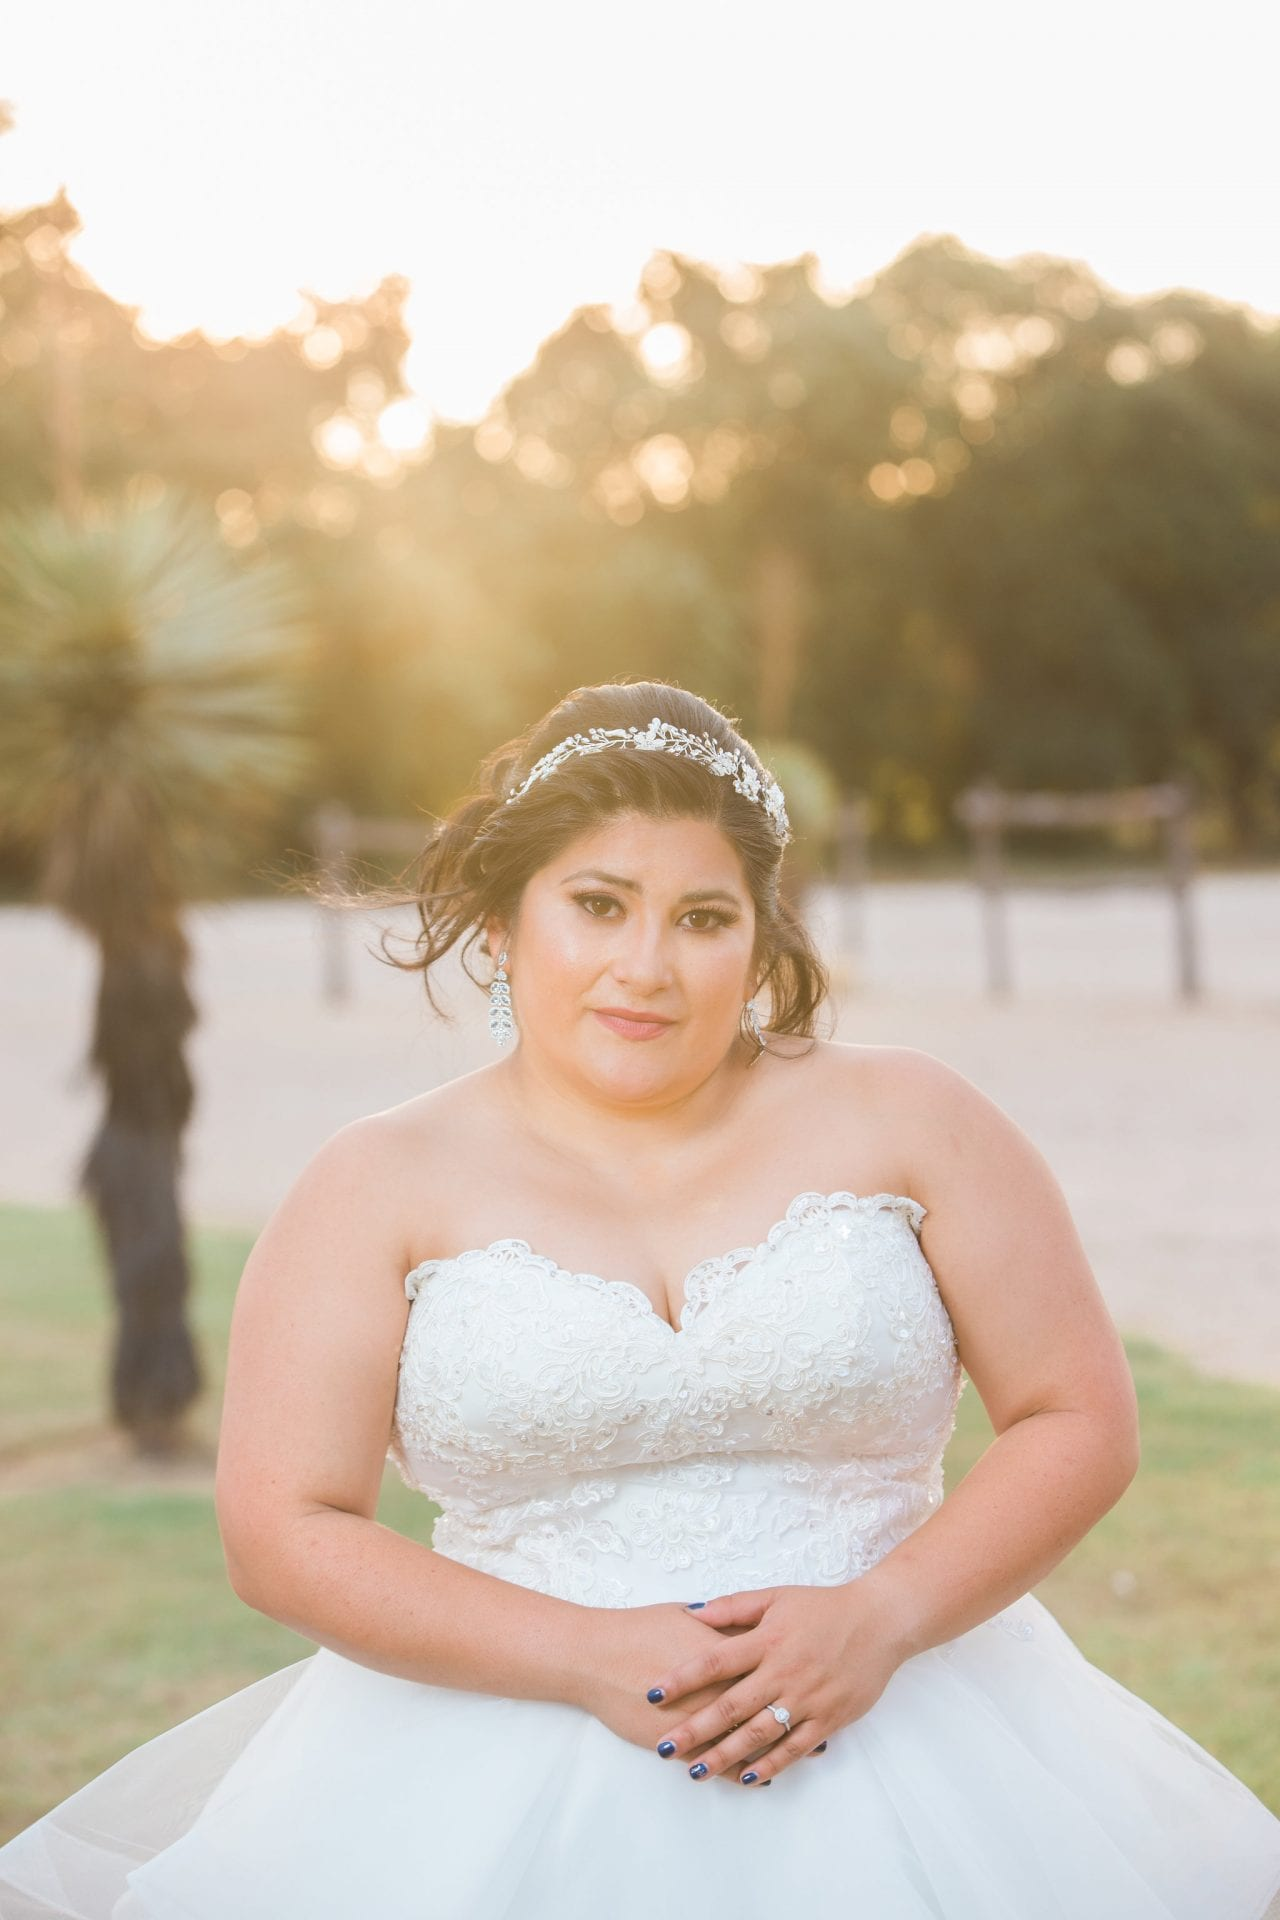 Laura's Bridals at Western Sky in the sun